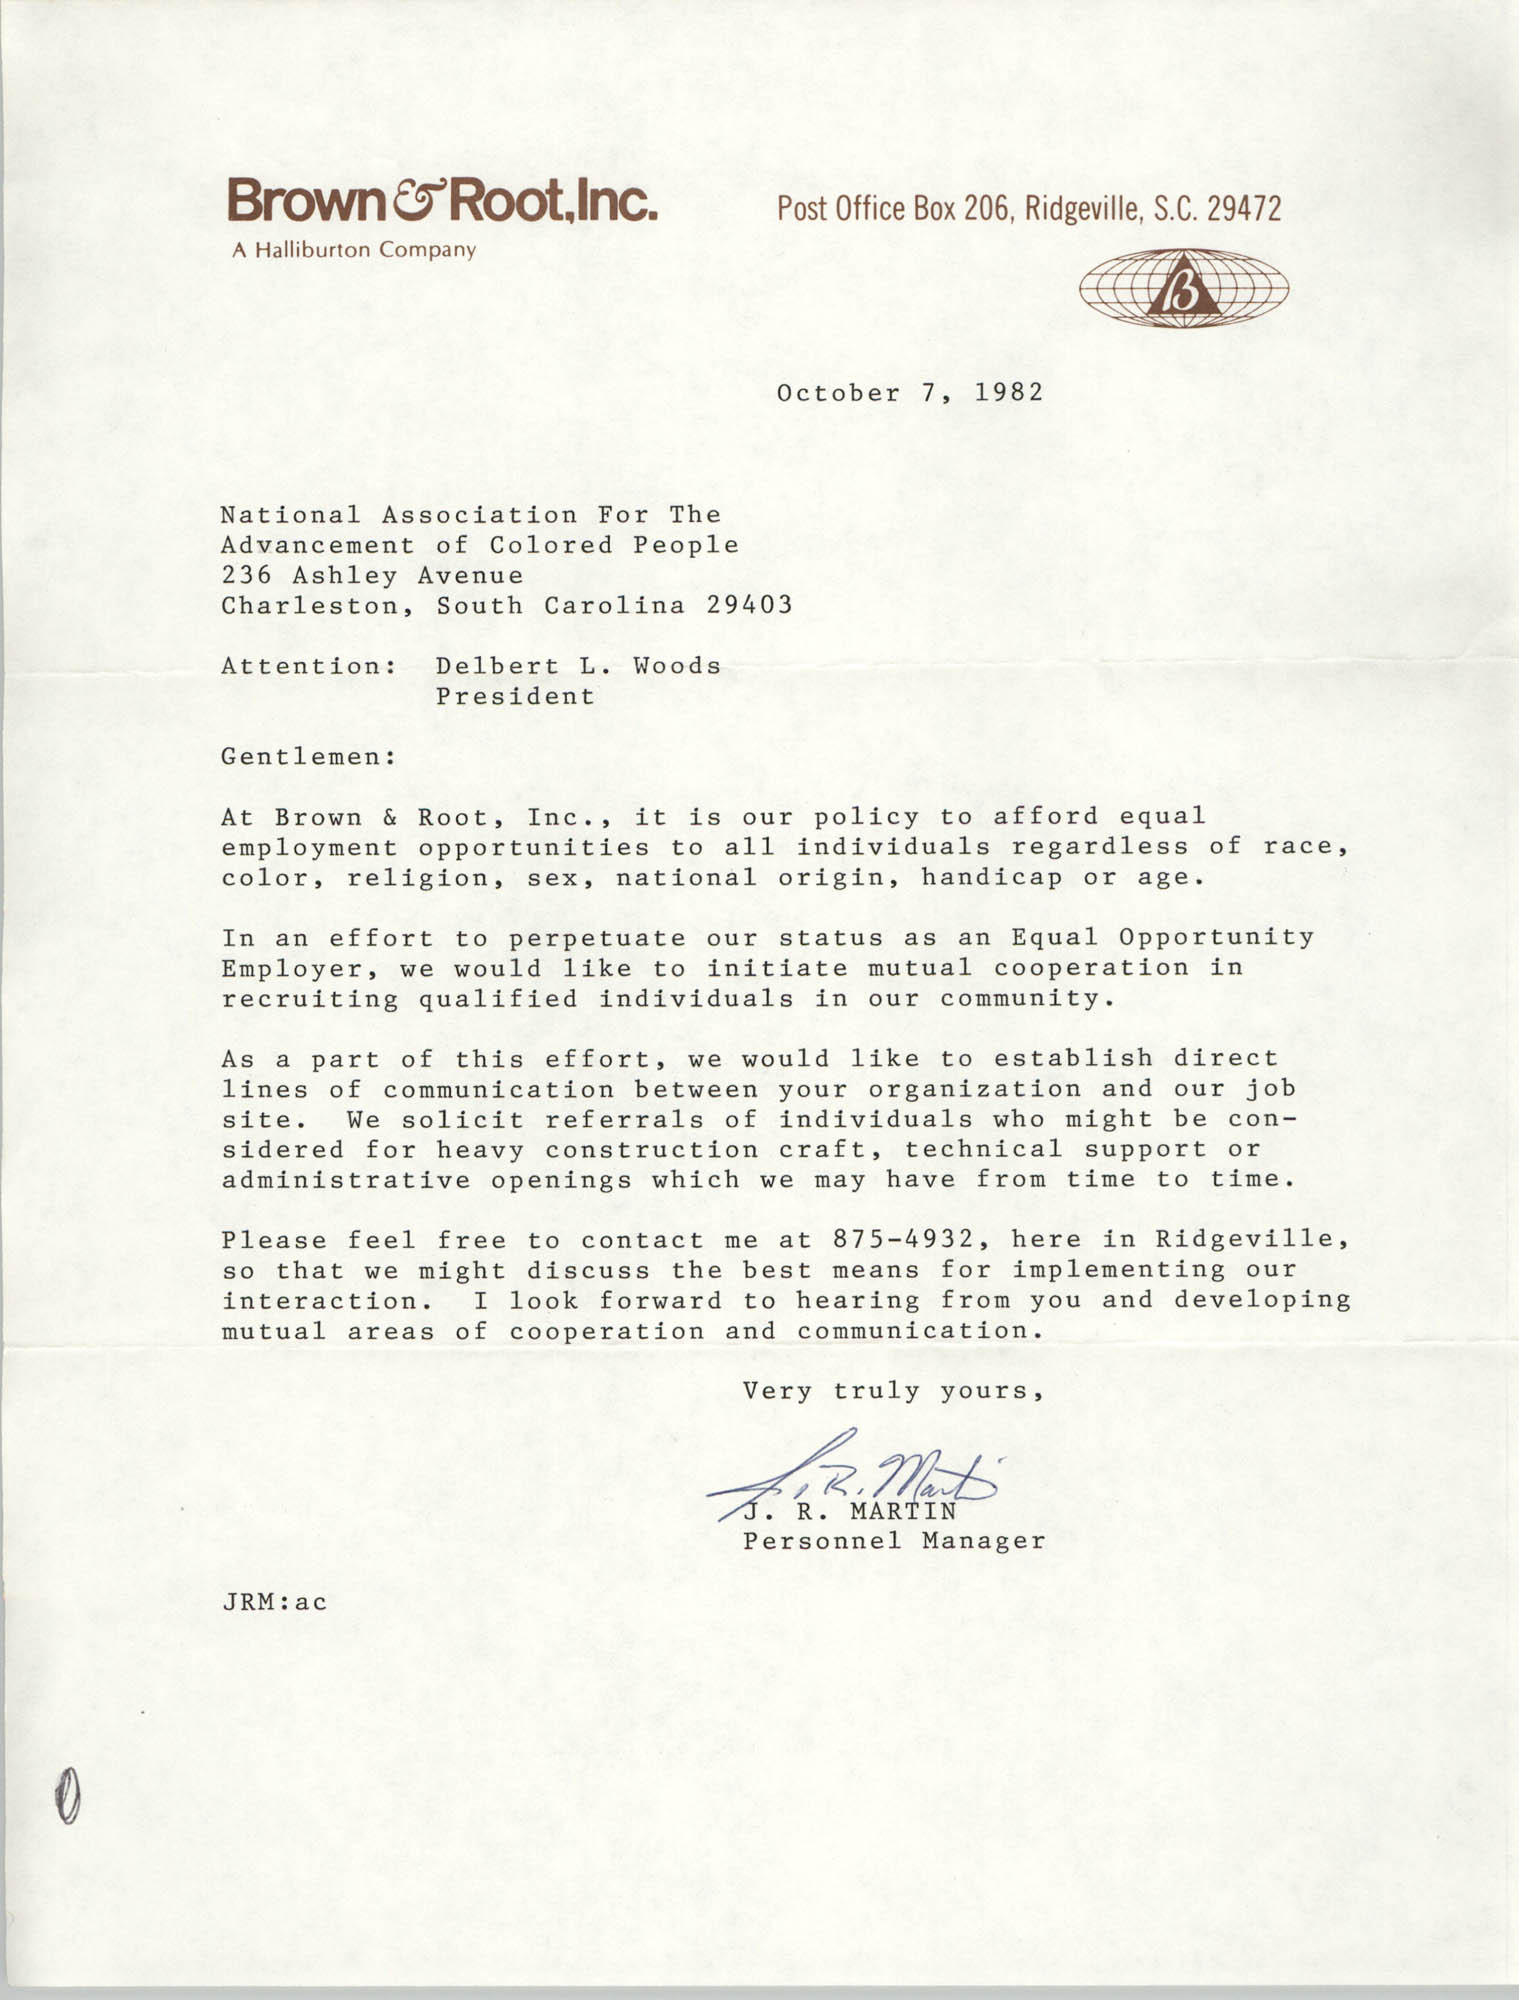 Letter from J. R. Martin to the Charleston Chapter of the NAACP, October 7, 1982